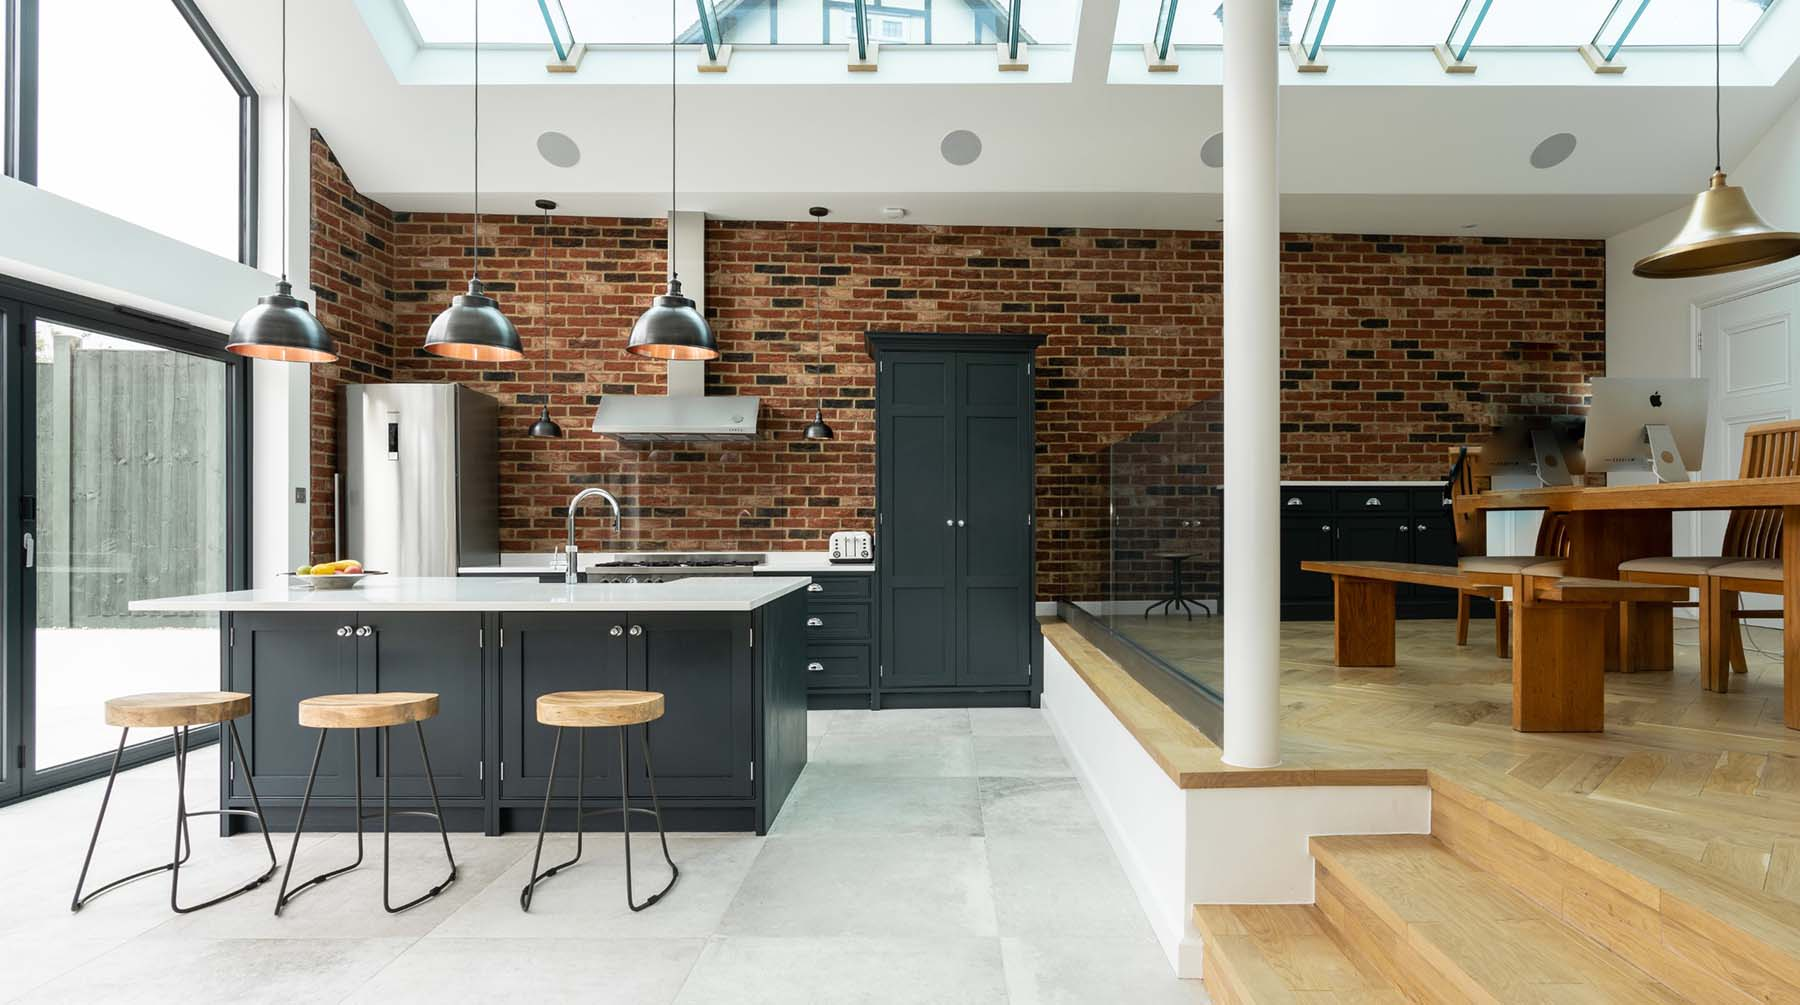 Red brick wall in an open floor plan modern home with vaulted ceilings and a glass roof.